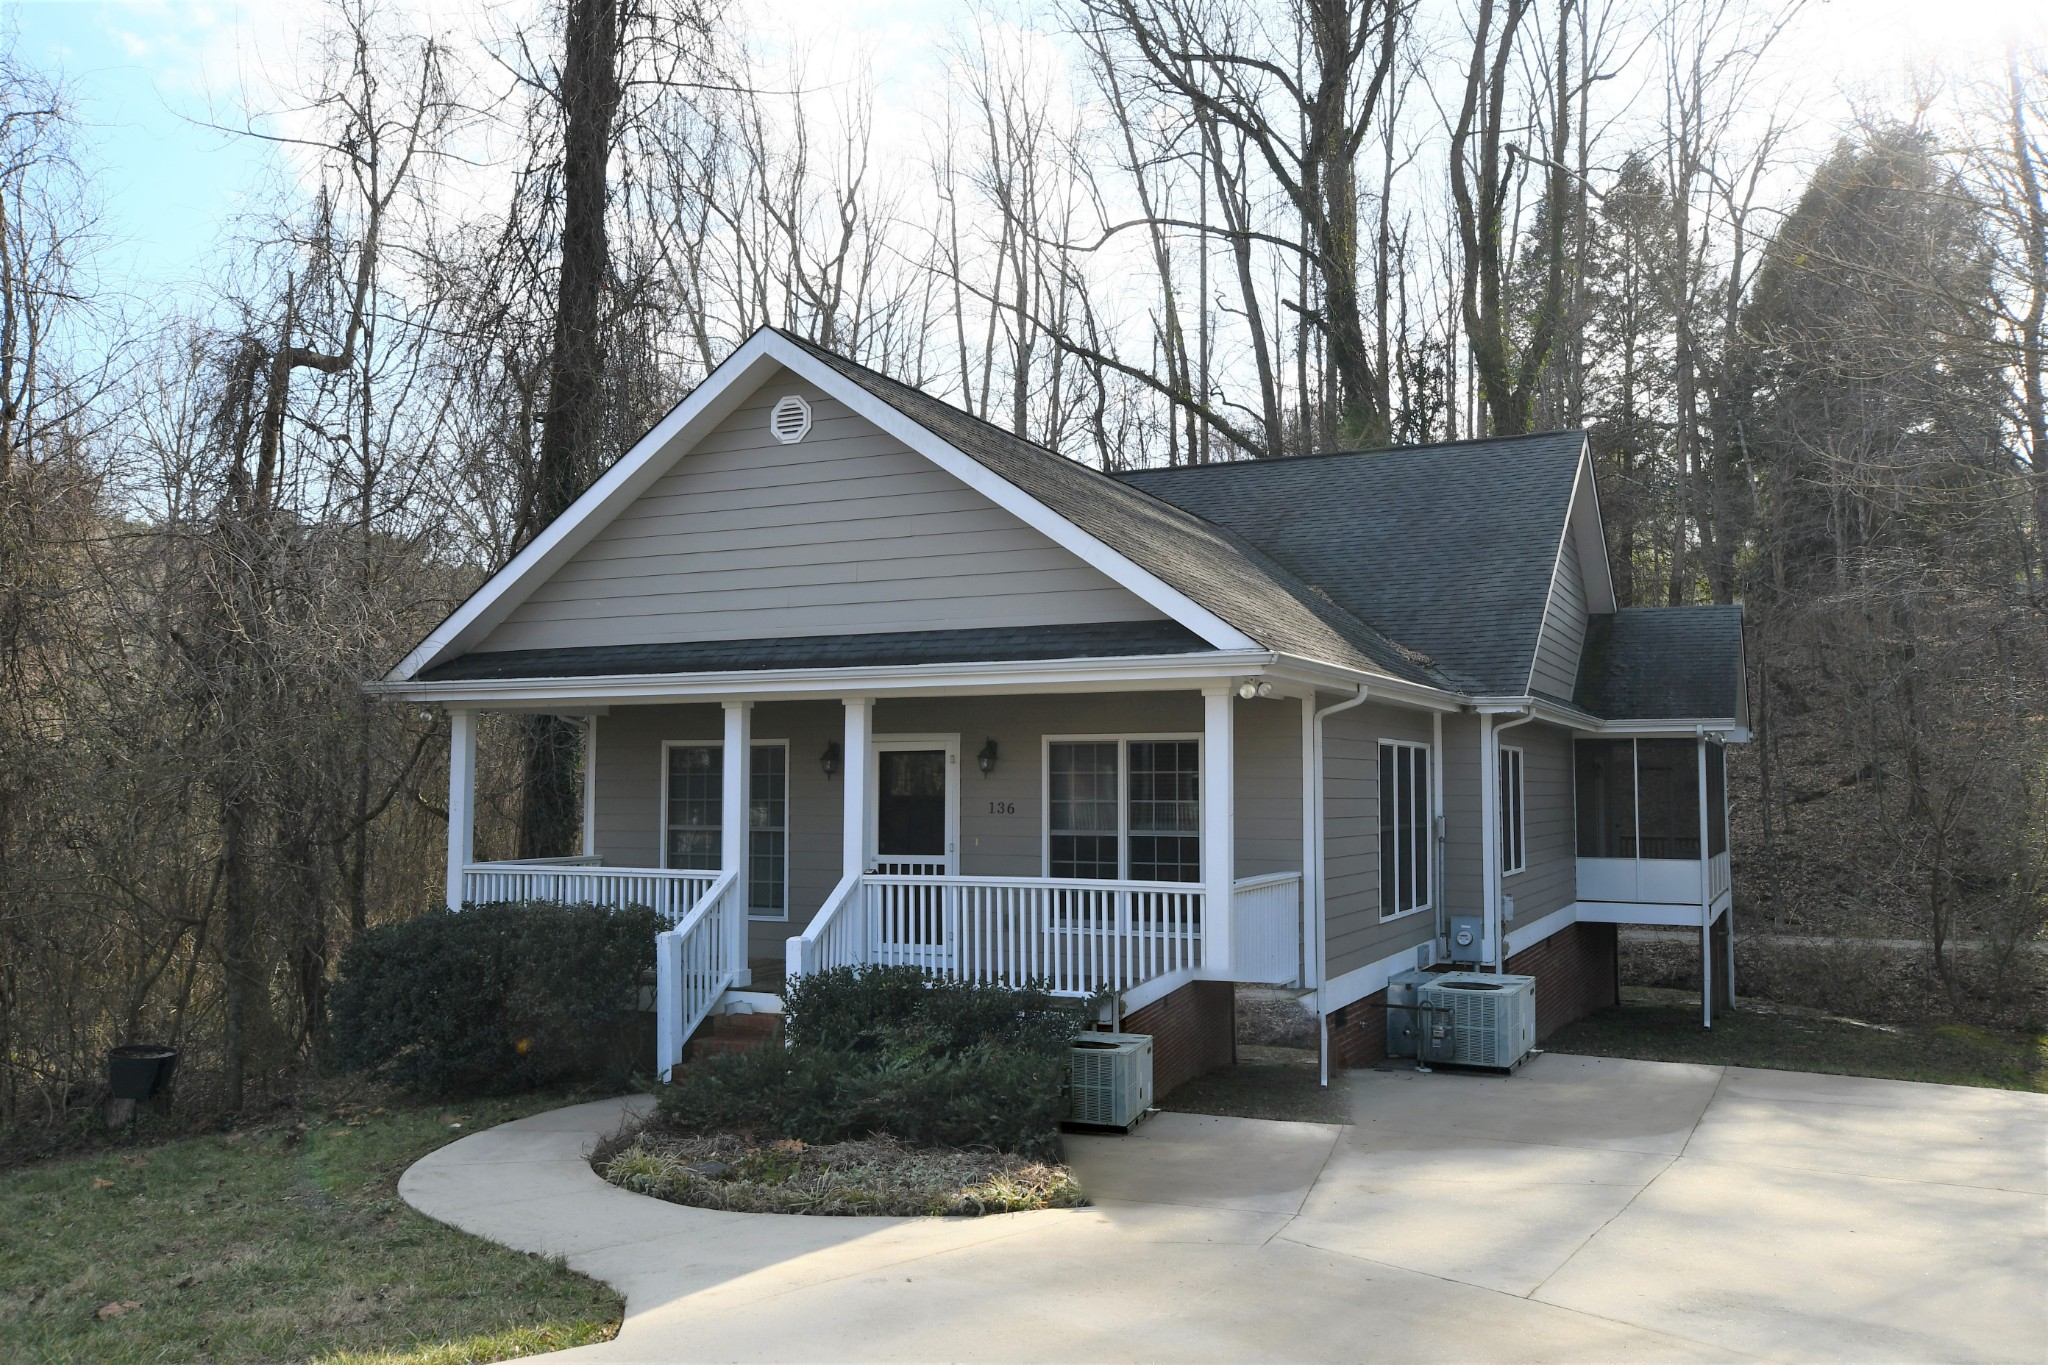 136 Parsons Green Cir Property Photo - Sewanee, TN real estate listing